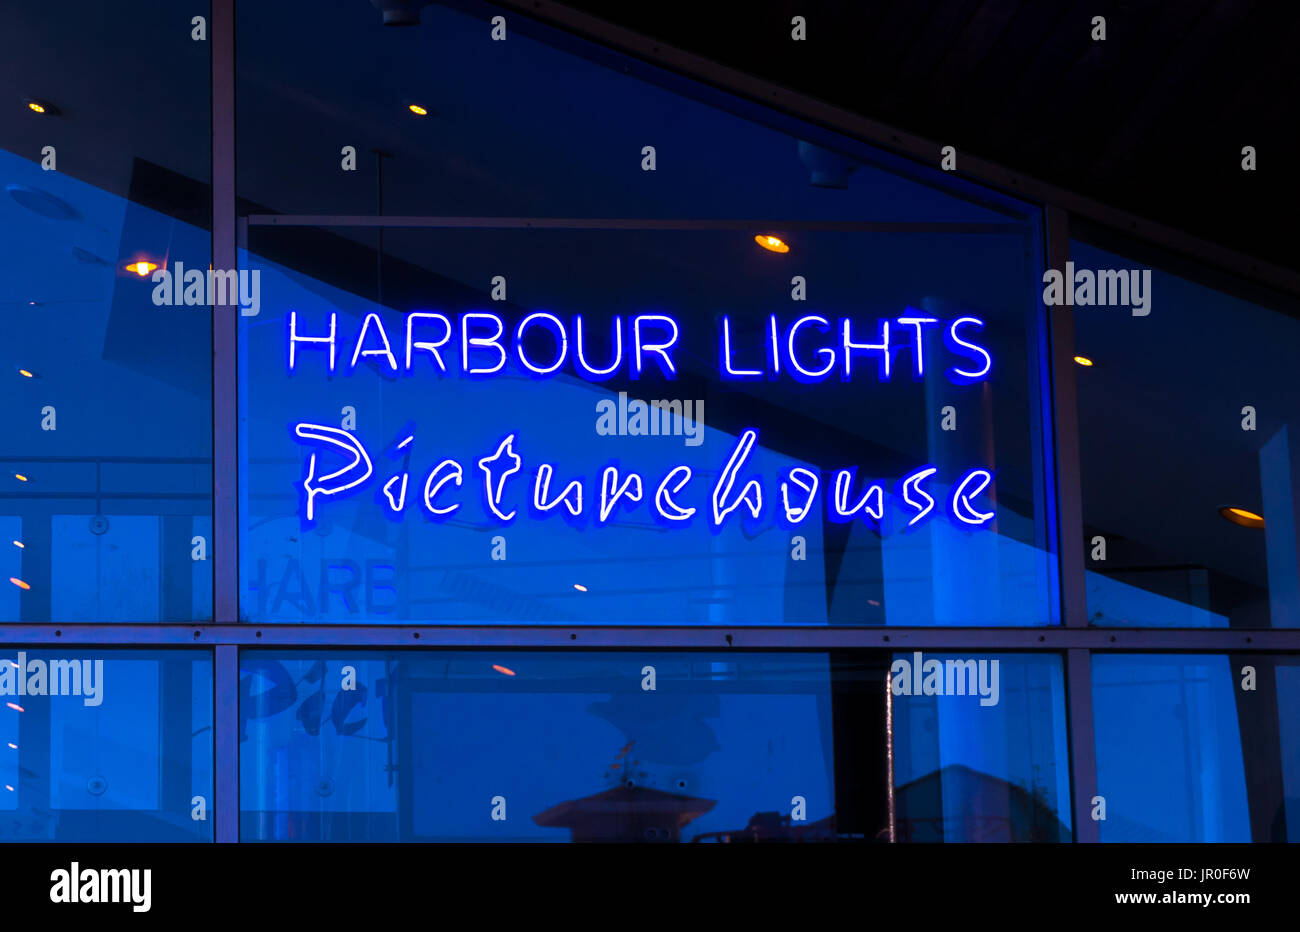 Illuminated sign for the Harbour Lights Picturehouse cinema in Southampton, UK - Stock Image